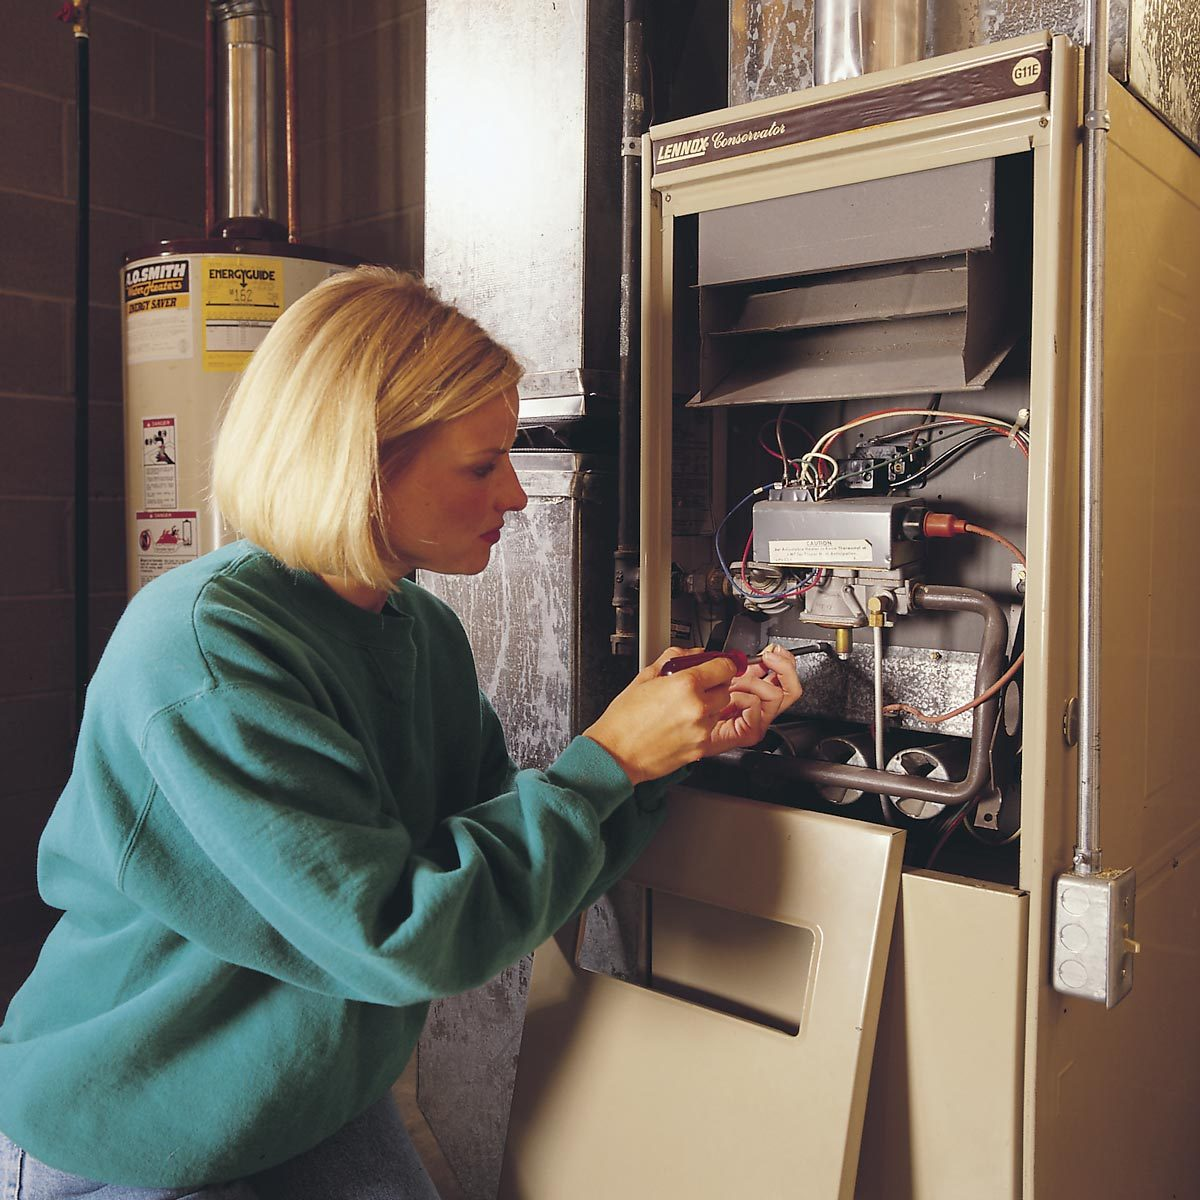 Do It Yourself Furnace Maintenance Will Save A Repair Bill Mobile Home Furnace Replacement on mobile home heating systems, rv furnace replacement, gas furnace thermocouple replacement, gravity furnace replacement, mobile home heat pumps, mobile home window replacement, mobile home skylight replacement, electric furnace sequencer replacement, mobile home chimney replacement, mobile home plumbers, mobile home floor replacement, vinyl windows replacement, oil furnace burner replacement, mobile home heating service, mobile home humidifiers, mobile home installation, mobile home hvac, mobile home ductwork replacement, furnace valve replacement, mobile home ventilation,